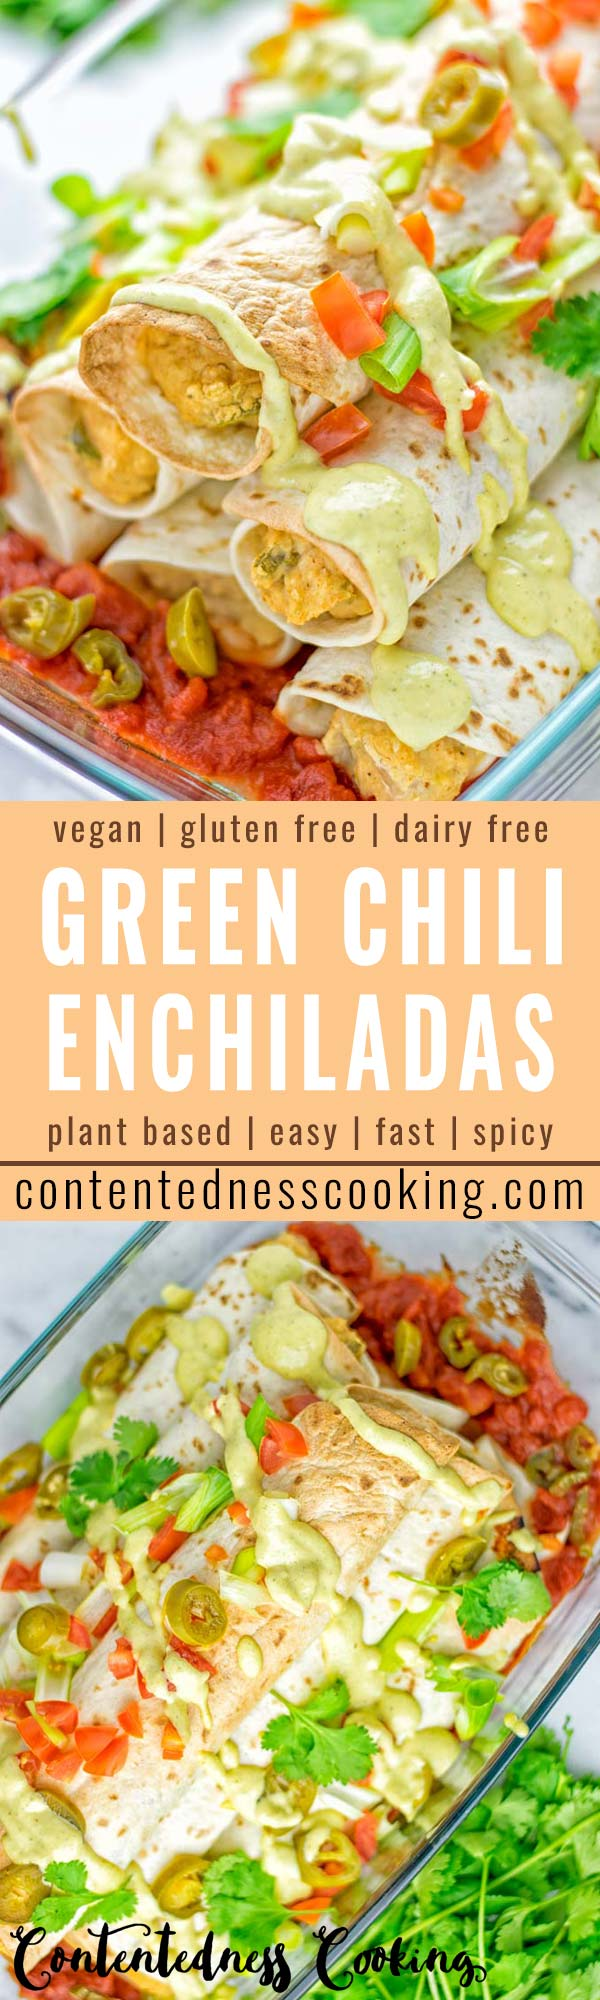 These Green Chili Enchiladas are entirely vegan, gluten free, super easy to make and so delicious. An amazing dairy free alternative for dinner, lunch, meal preparation, work lunch, potlucks, parties and so much more that the whole family will love. #vegan #glutenfree #dairyfree #contentednesscooking #dinner #lunch #mealprep #worklunchideas #easyfood #enchiladas #vegetarian #potluckrecipes #partyfood #mexican #greenchilirecipes